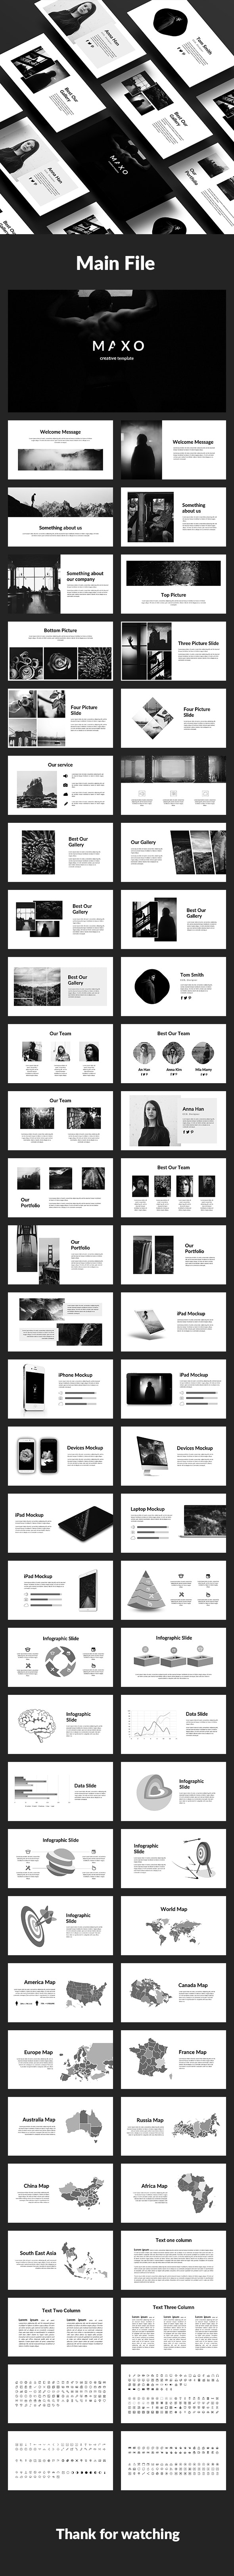 Maxo-Creative Powerpoint Template - Creative PowerPoint Templates